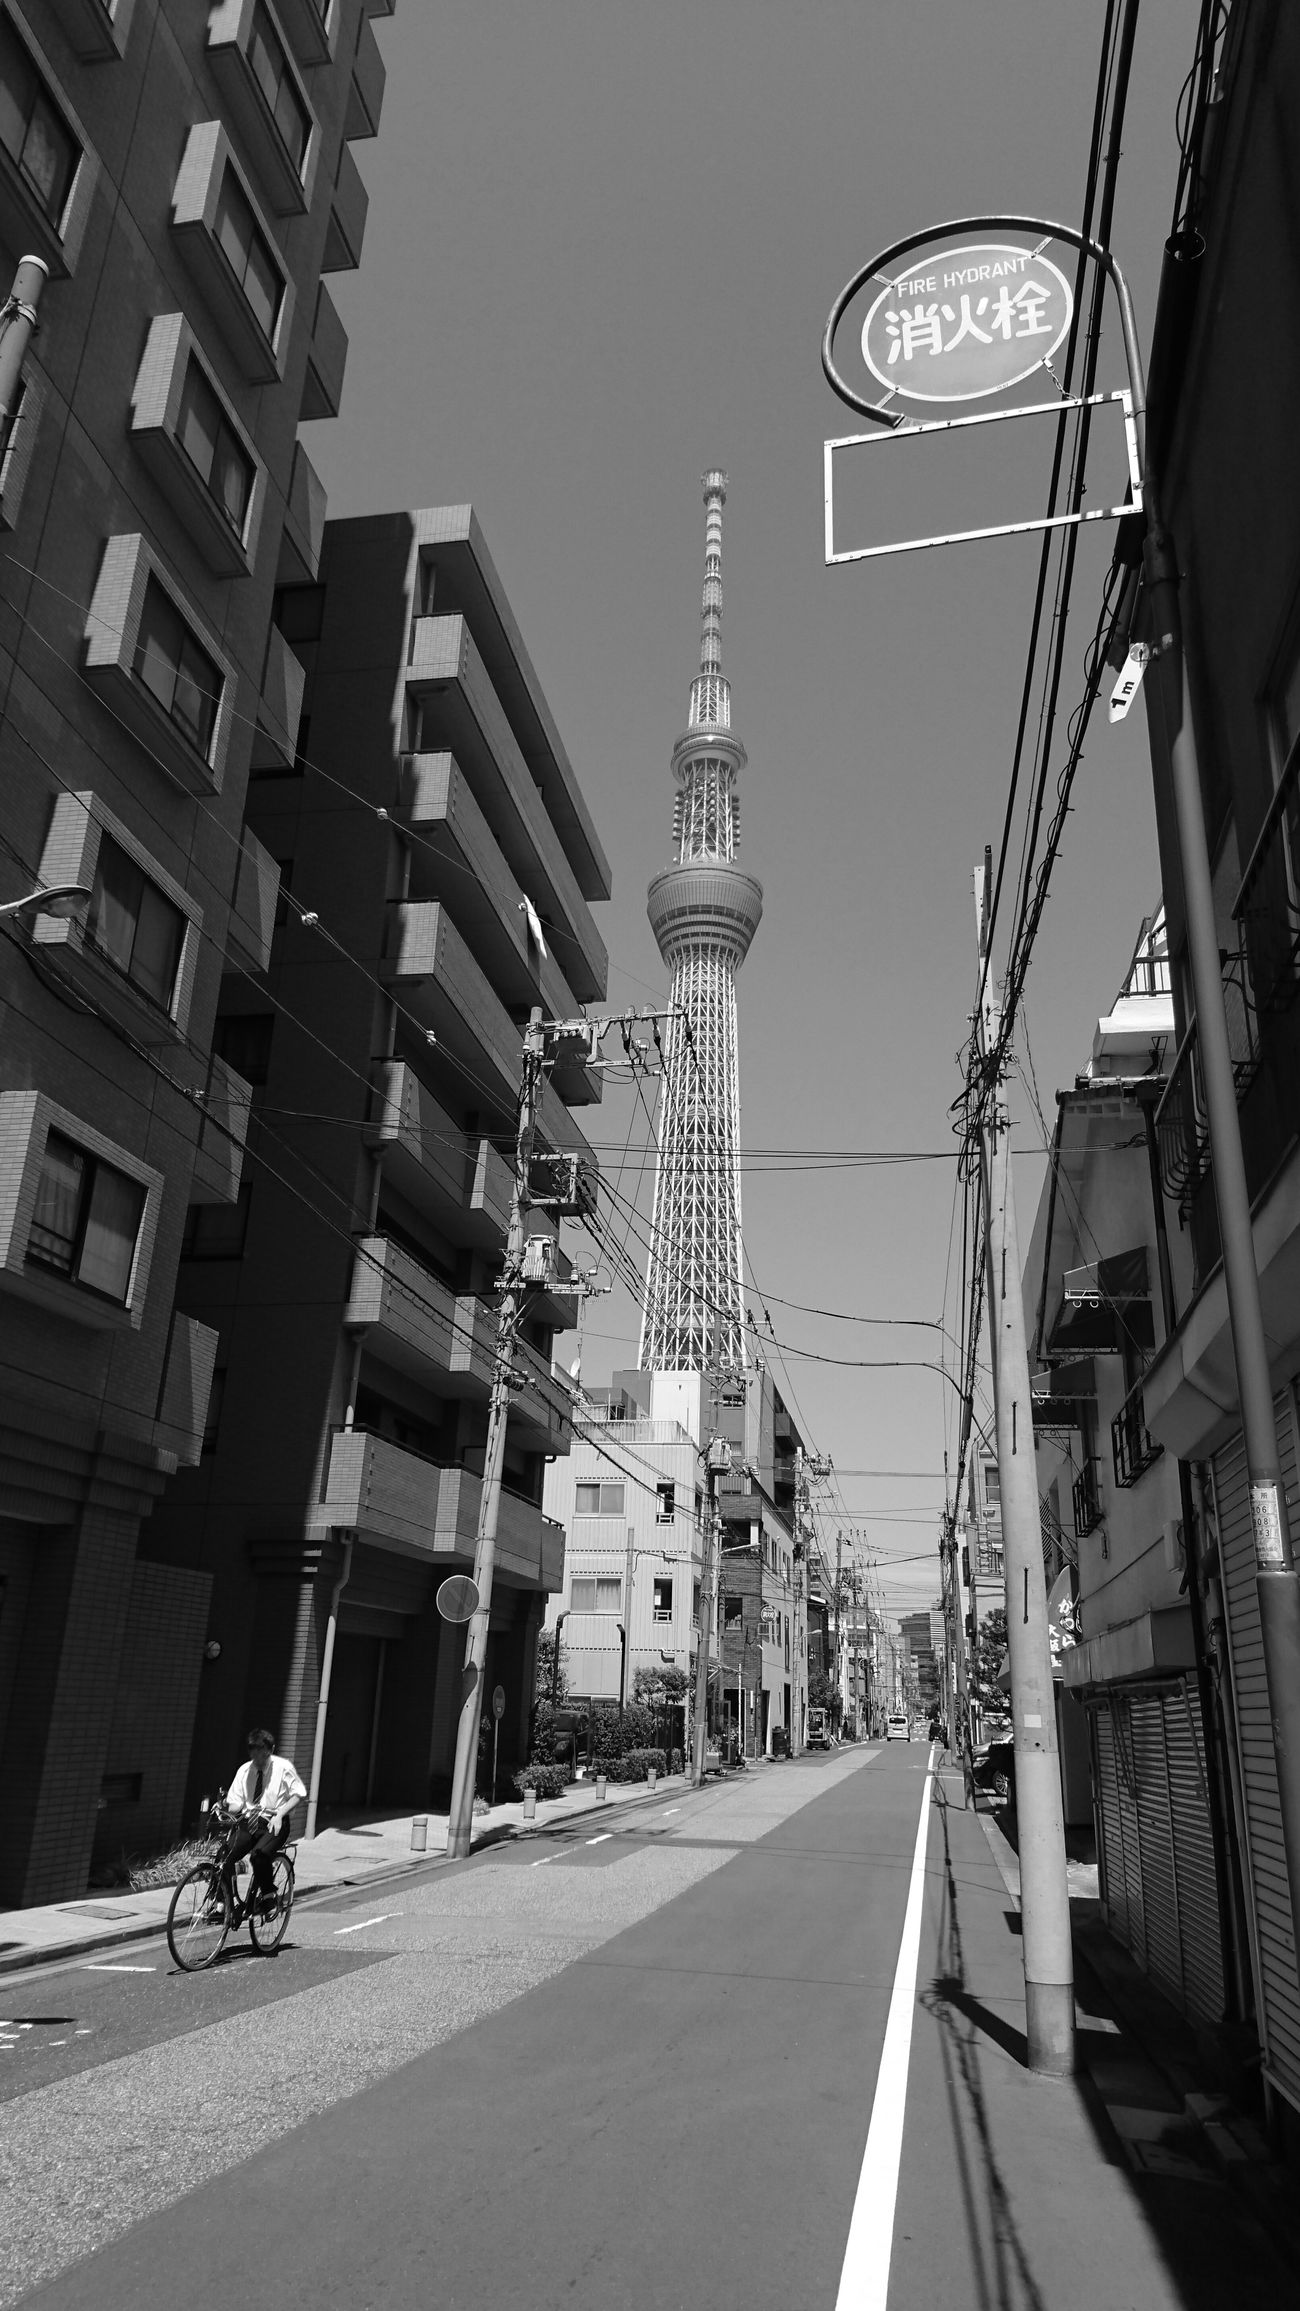 東京スカイツリー 町の風景 日常的風景 日常 Street Photography On The Road Tokyo Street Photography TOWNSCAPE Black And White Monochrome Monochrome_life Perspective Vanishing Point Capture The Moment From My Point Of View Tokyo Snapshot EyeEm Best Shots - Black + White